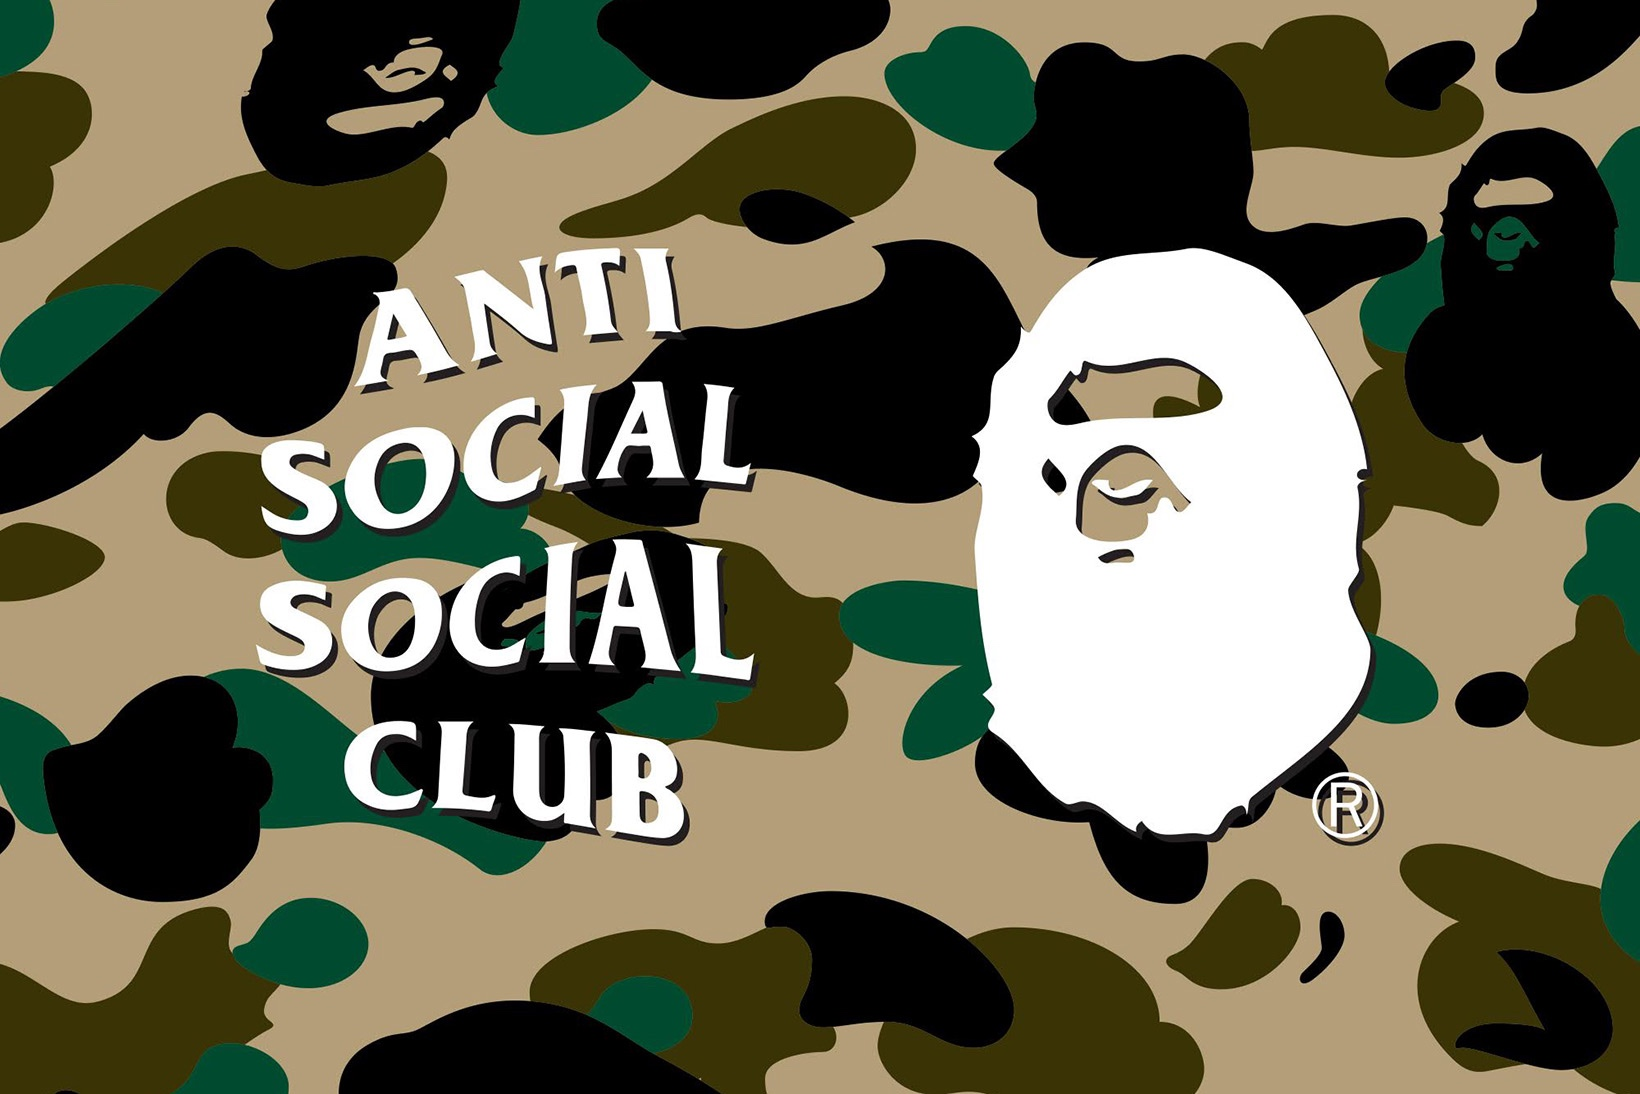 3a07b4e455f1 BAPE x Anti Social Social Club to Release Collaboration